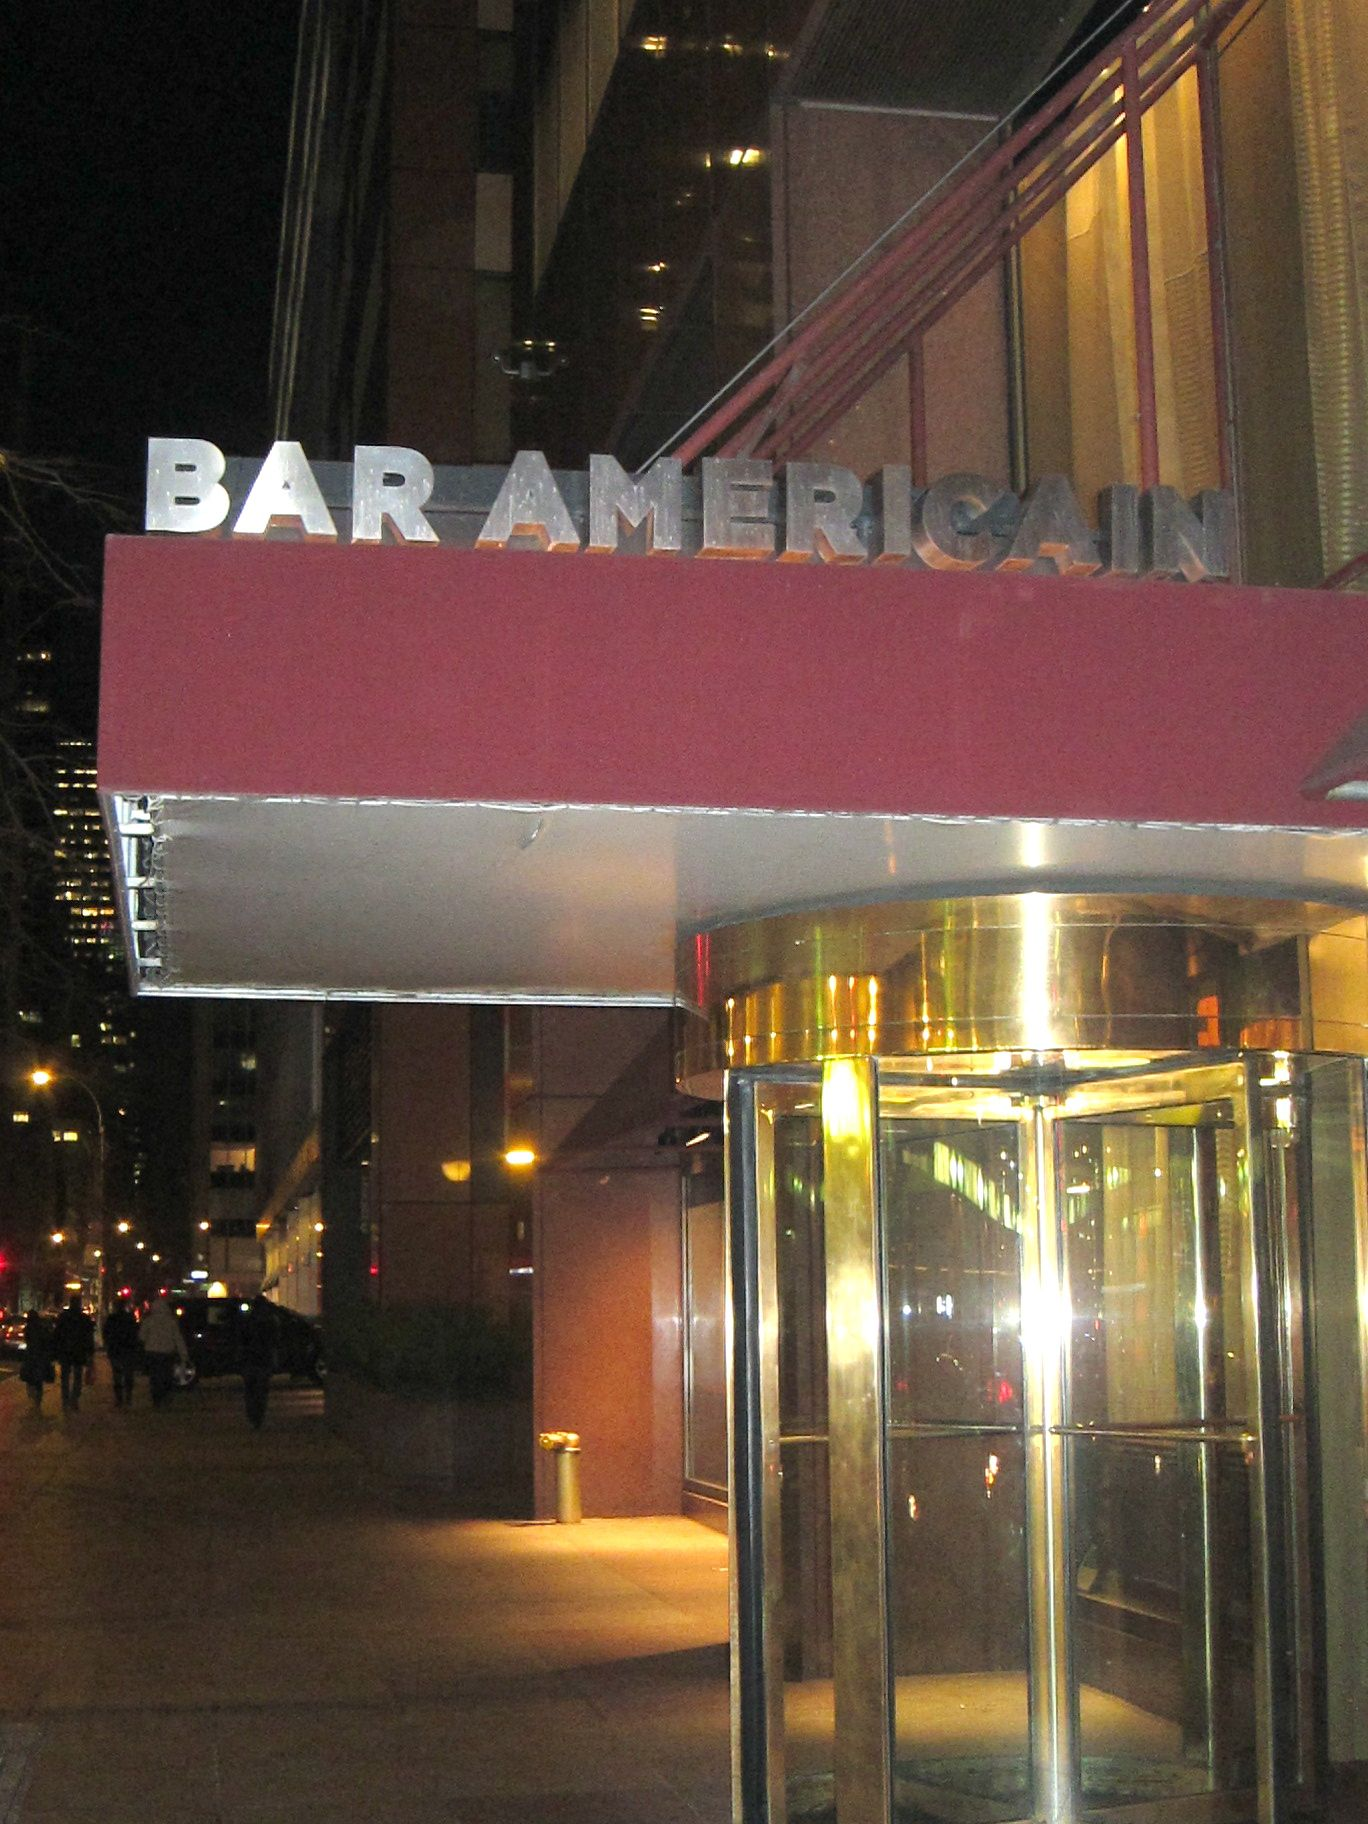 Bar americain